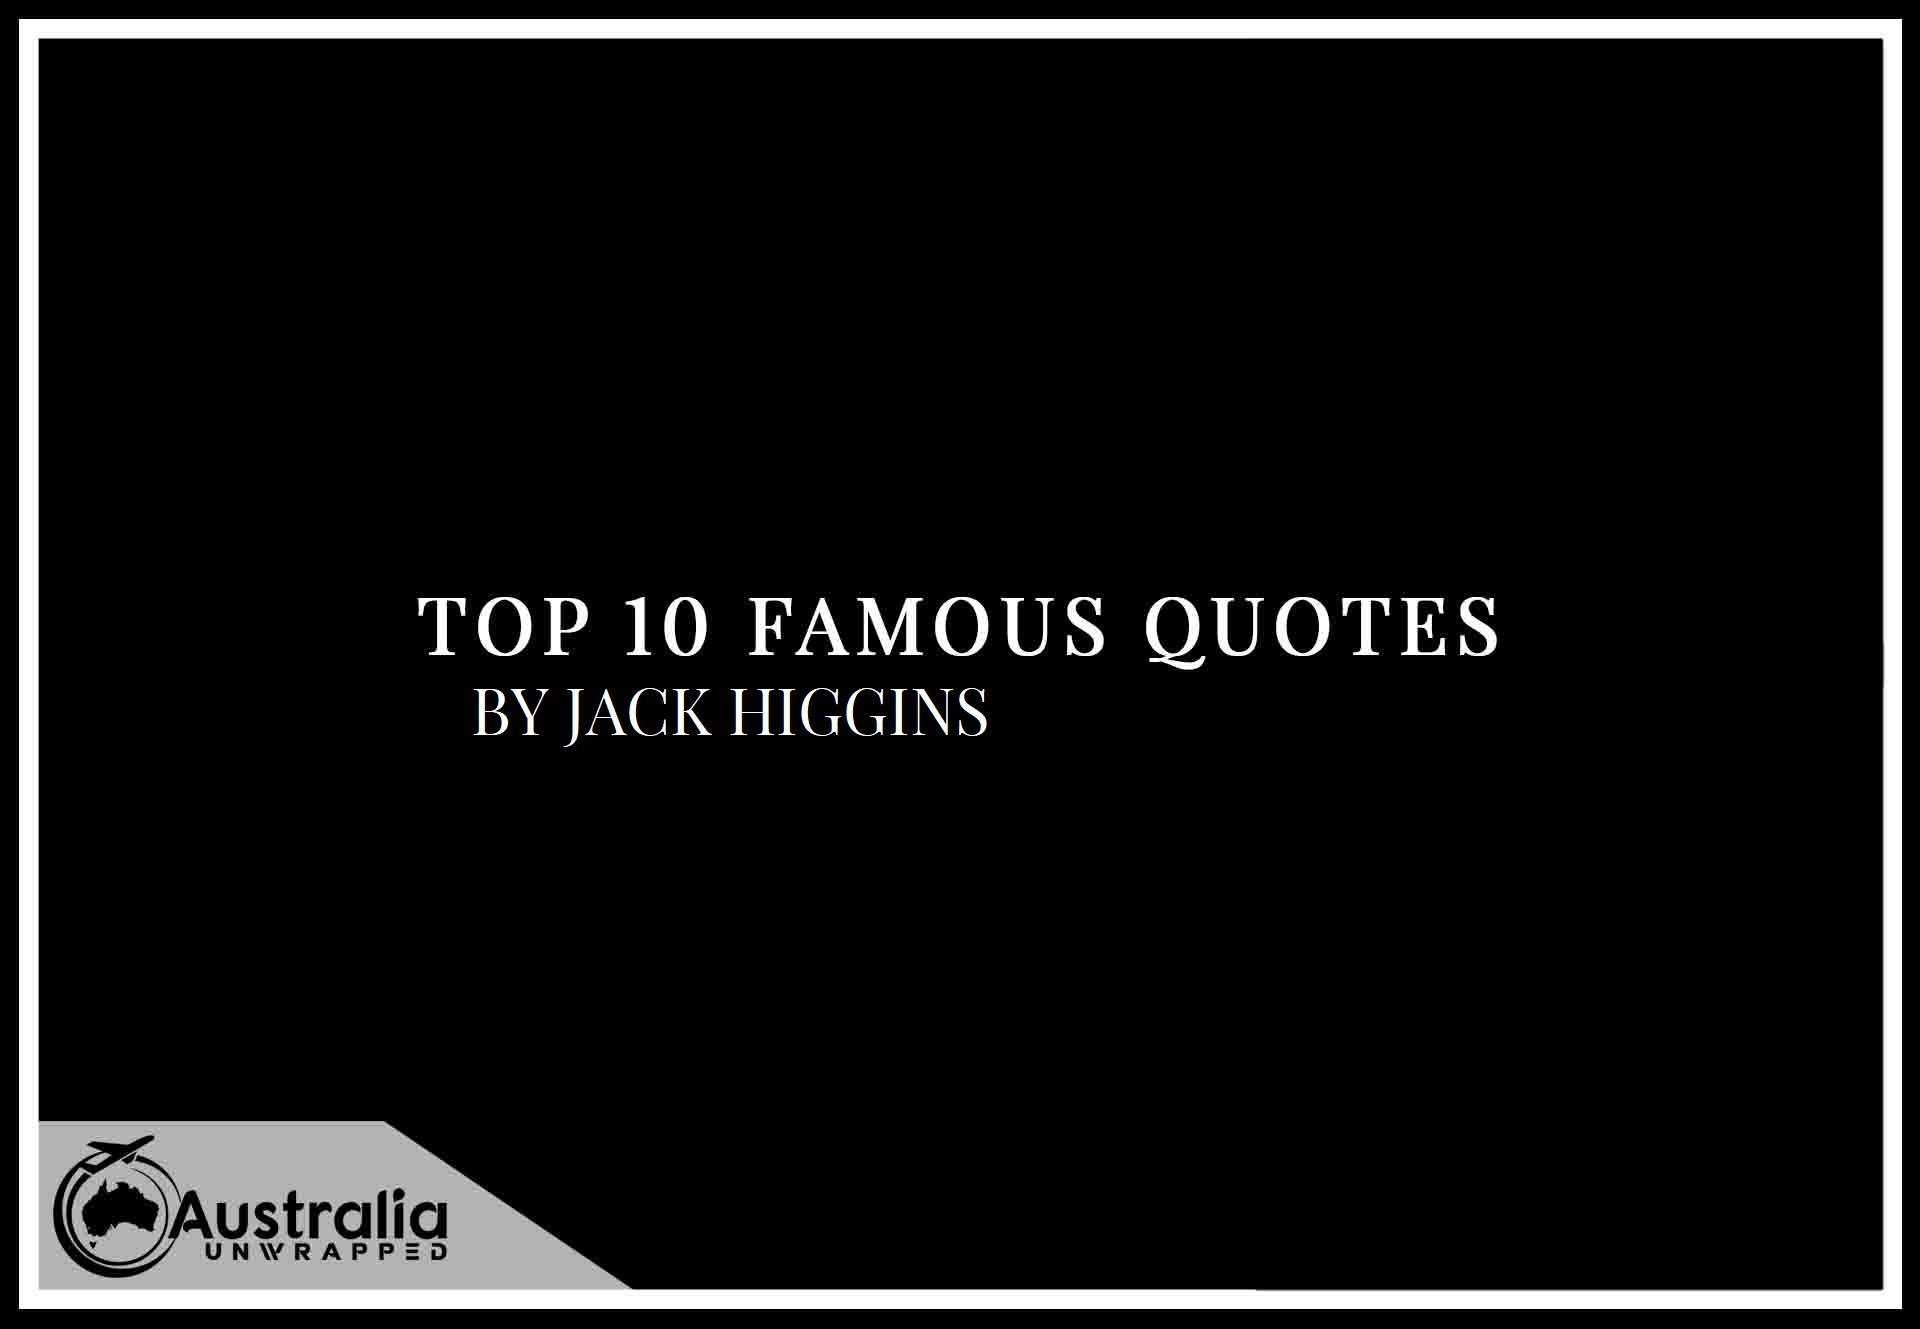 Top 10 Famous Quotes by Author Jack Higgins